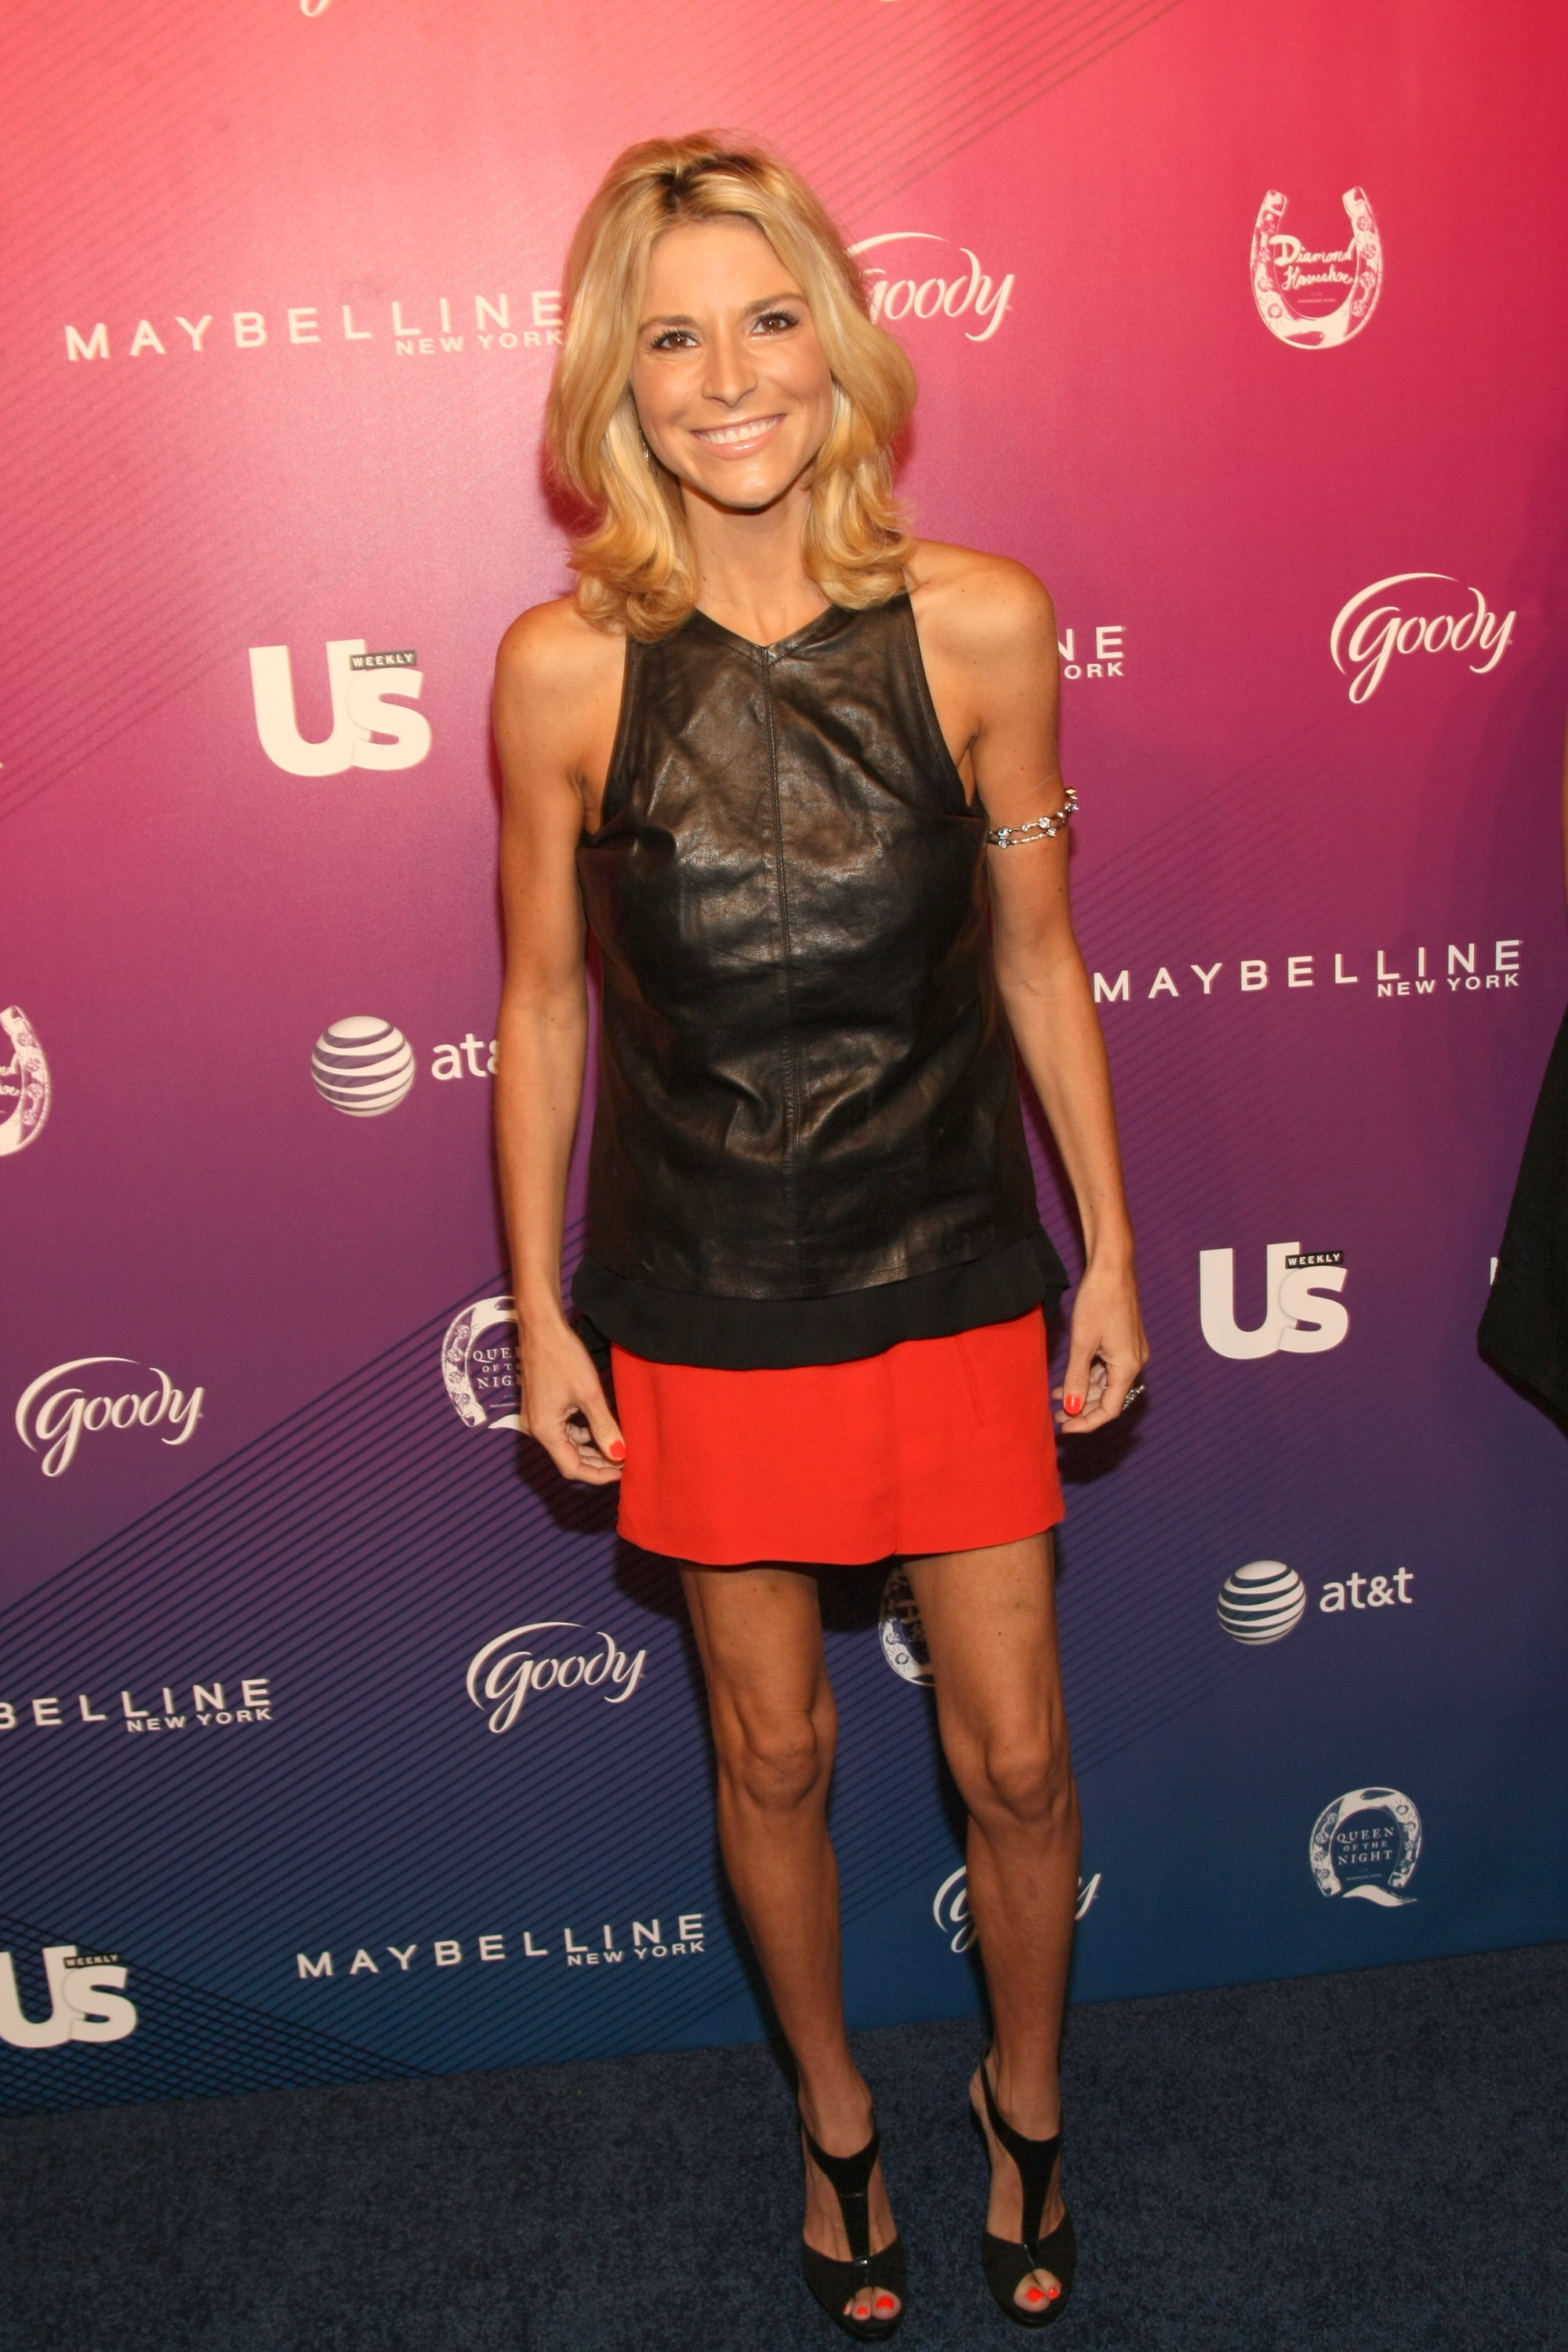 TV Personality Diem Brown attends Us Weekly's 2014 Most Stylish New Yorkers Celebration at Diamond Horseshoe at the Paramount Hotel on Sept. 10, 2014 in New York City.